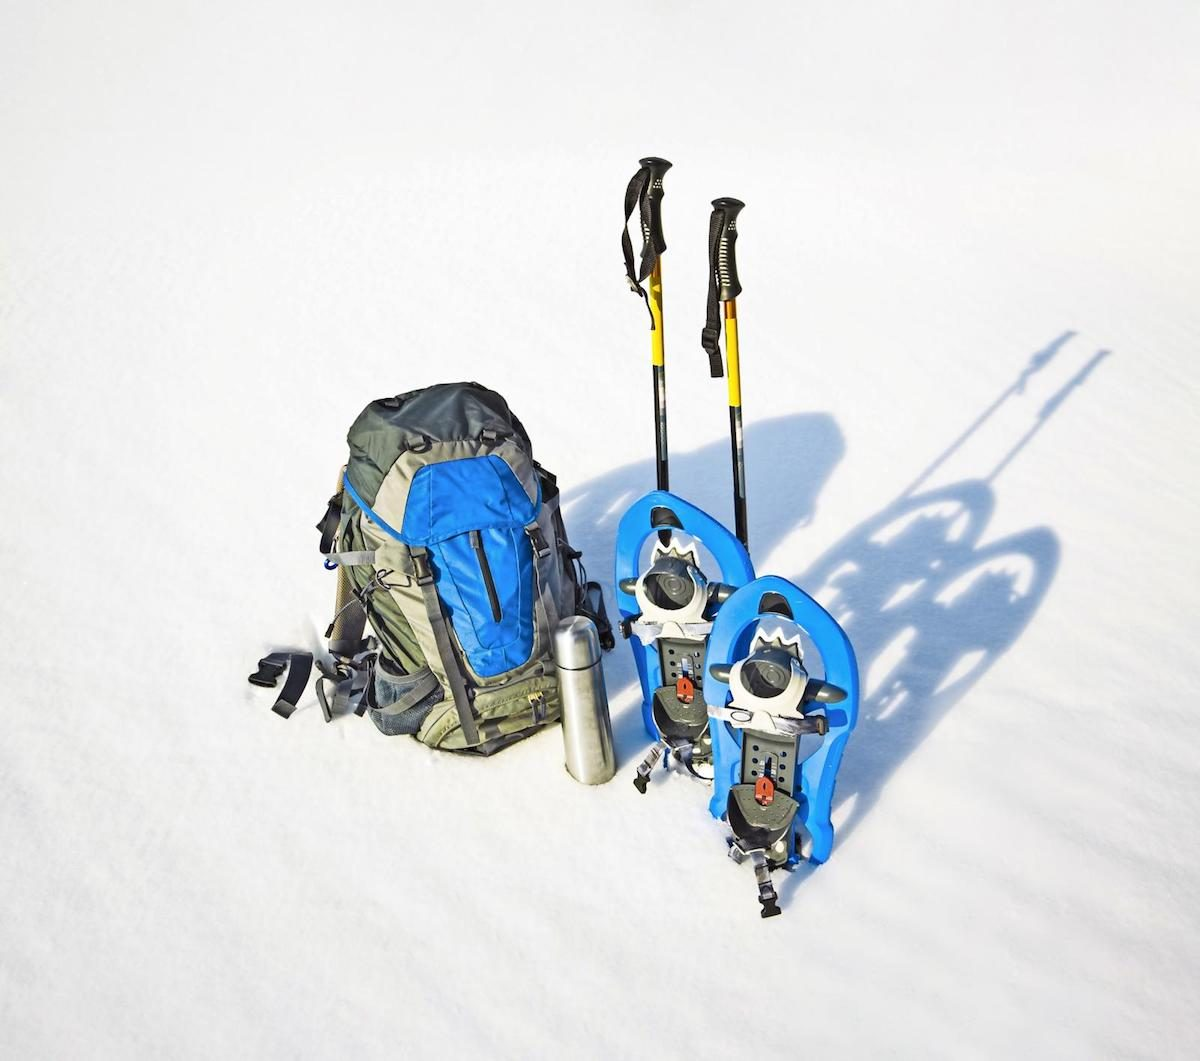 A backpack, showshoes and trekking poles in the snow.